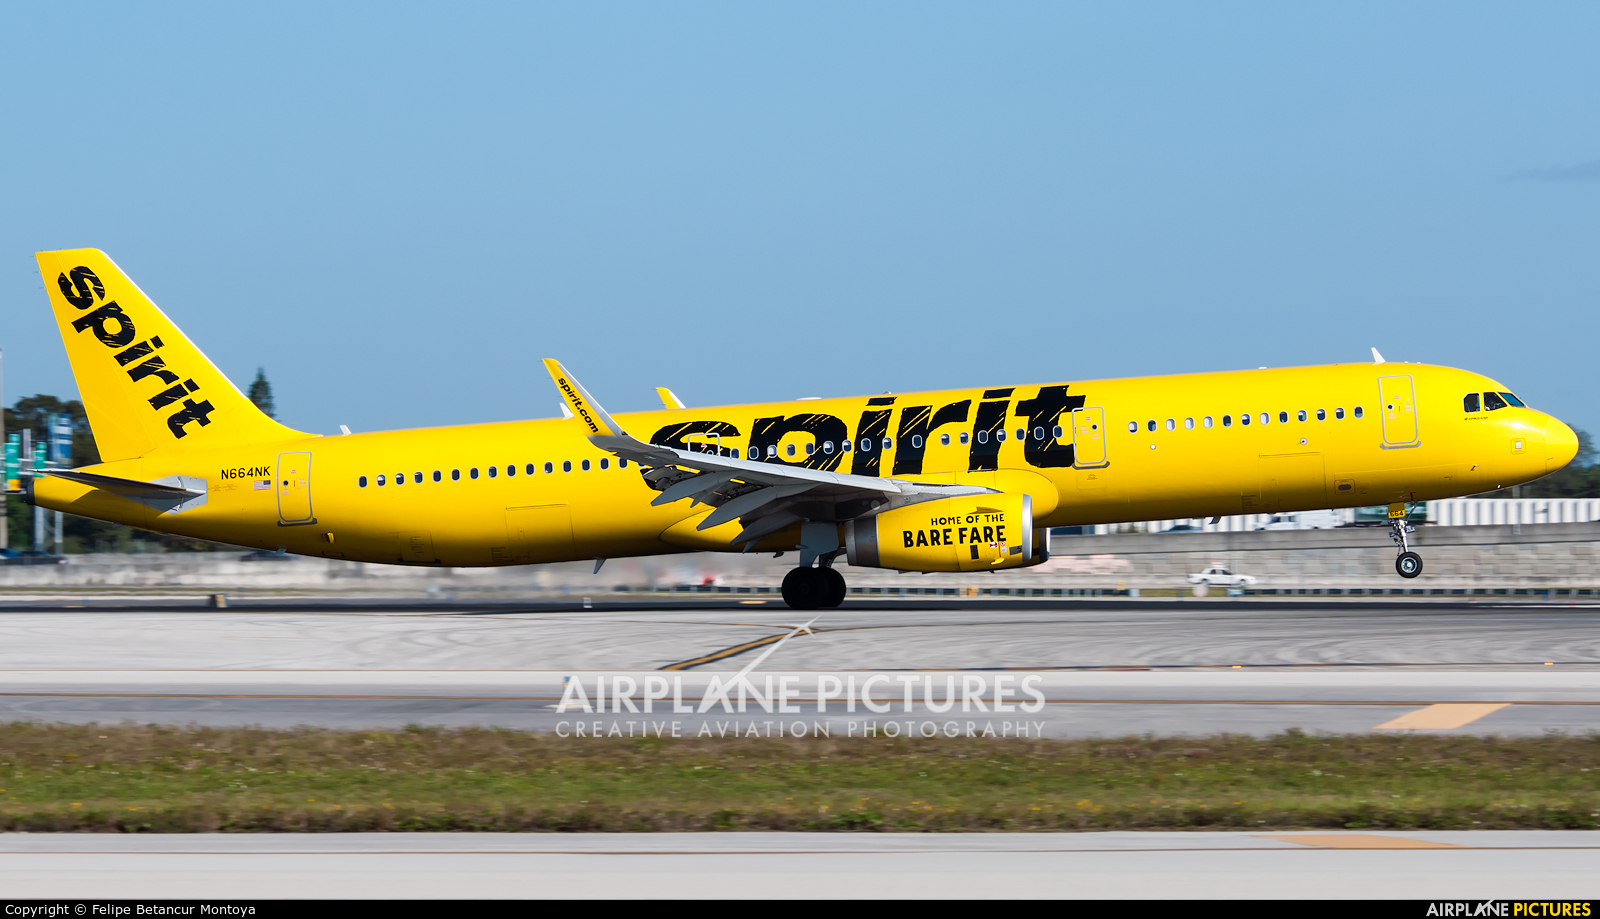 Spirit Airlines N664NK aircraft at Fort Lauderdale - Hollywood Intl